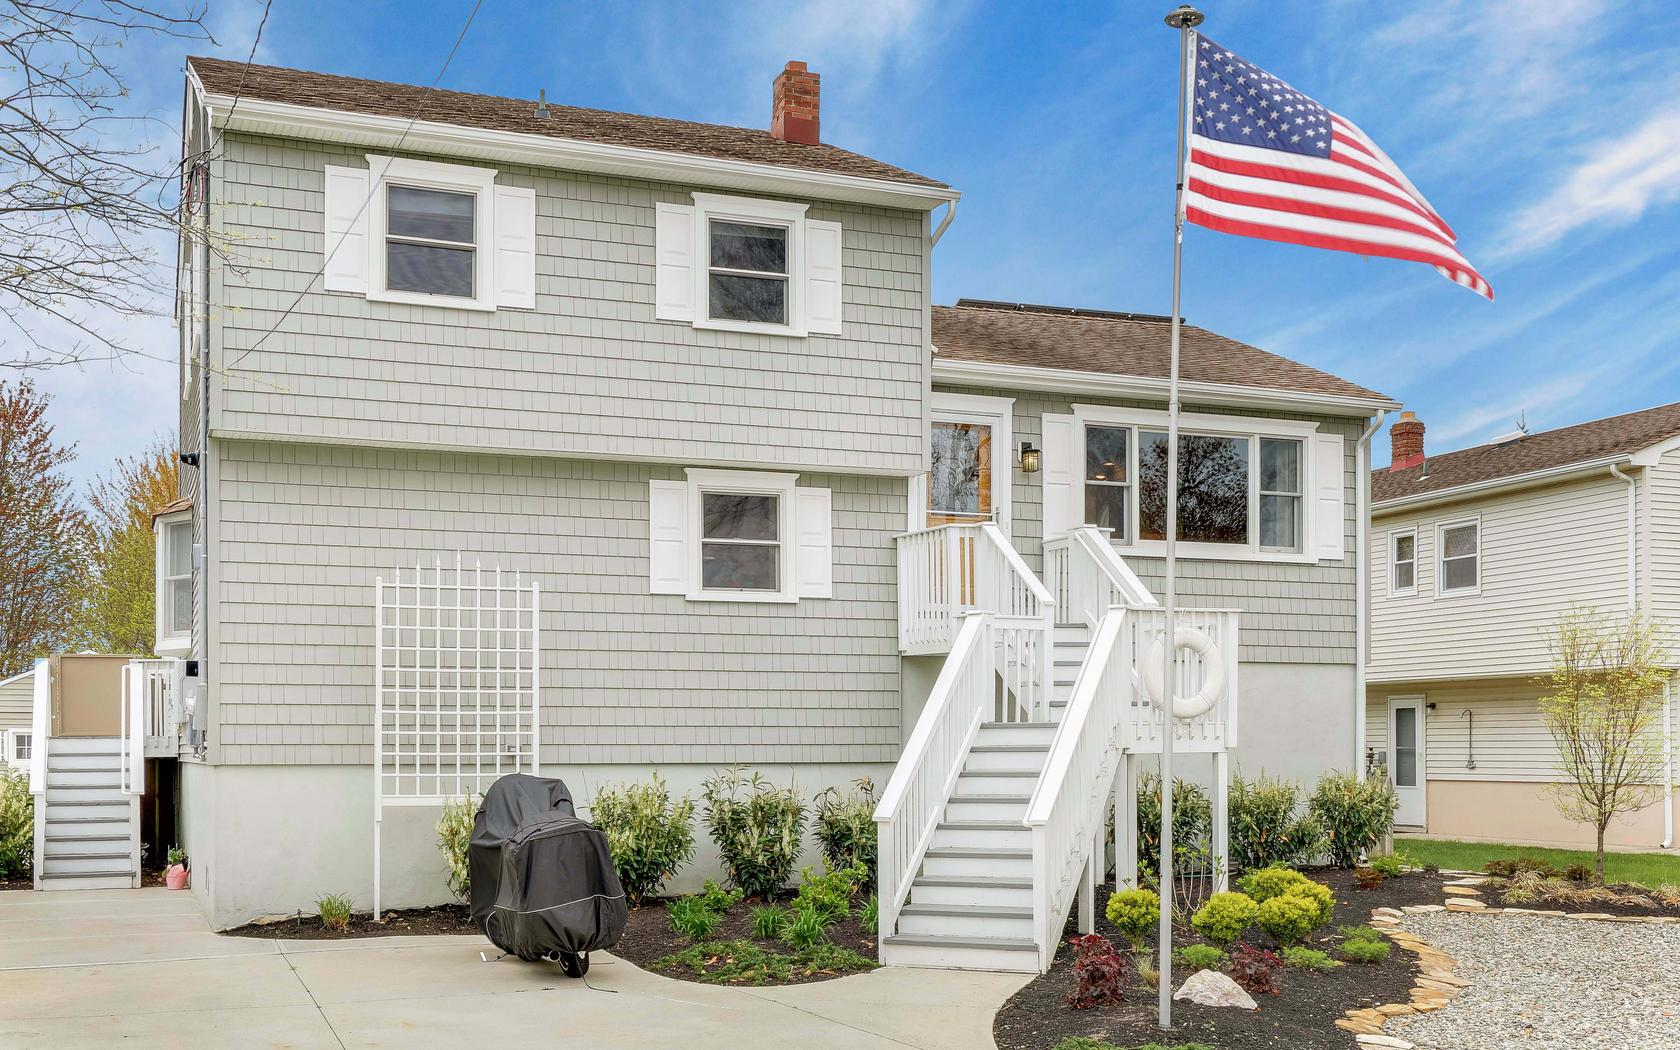 Single Family Home for Sale at Completely Redone Beach Home 351 E Virginia Ave Manasquan, New Jersey 08736 United States